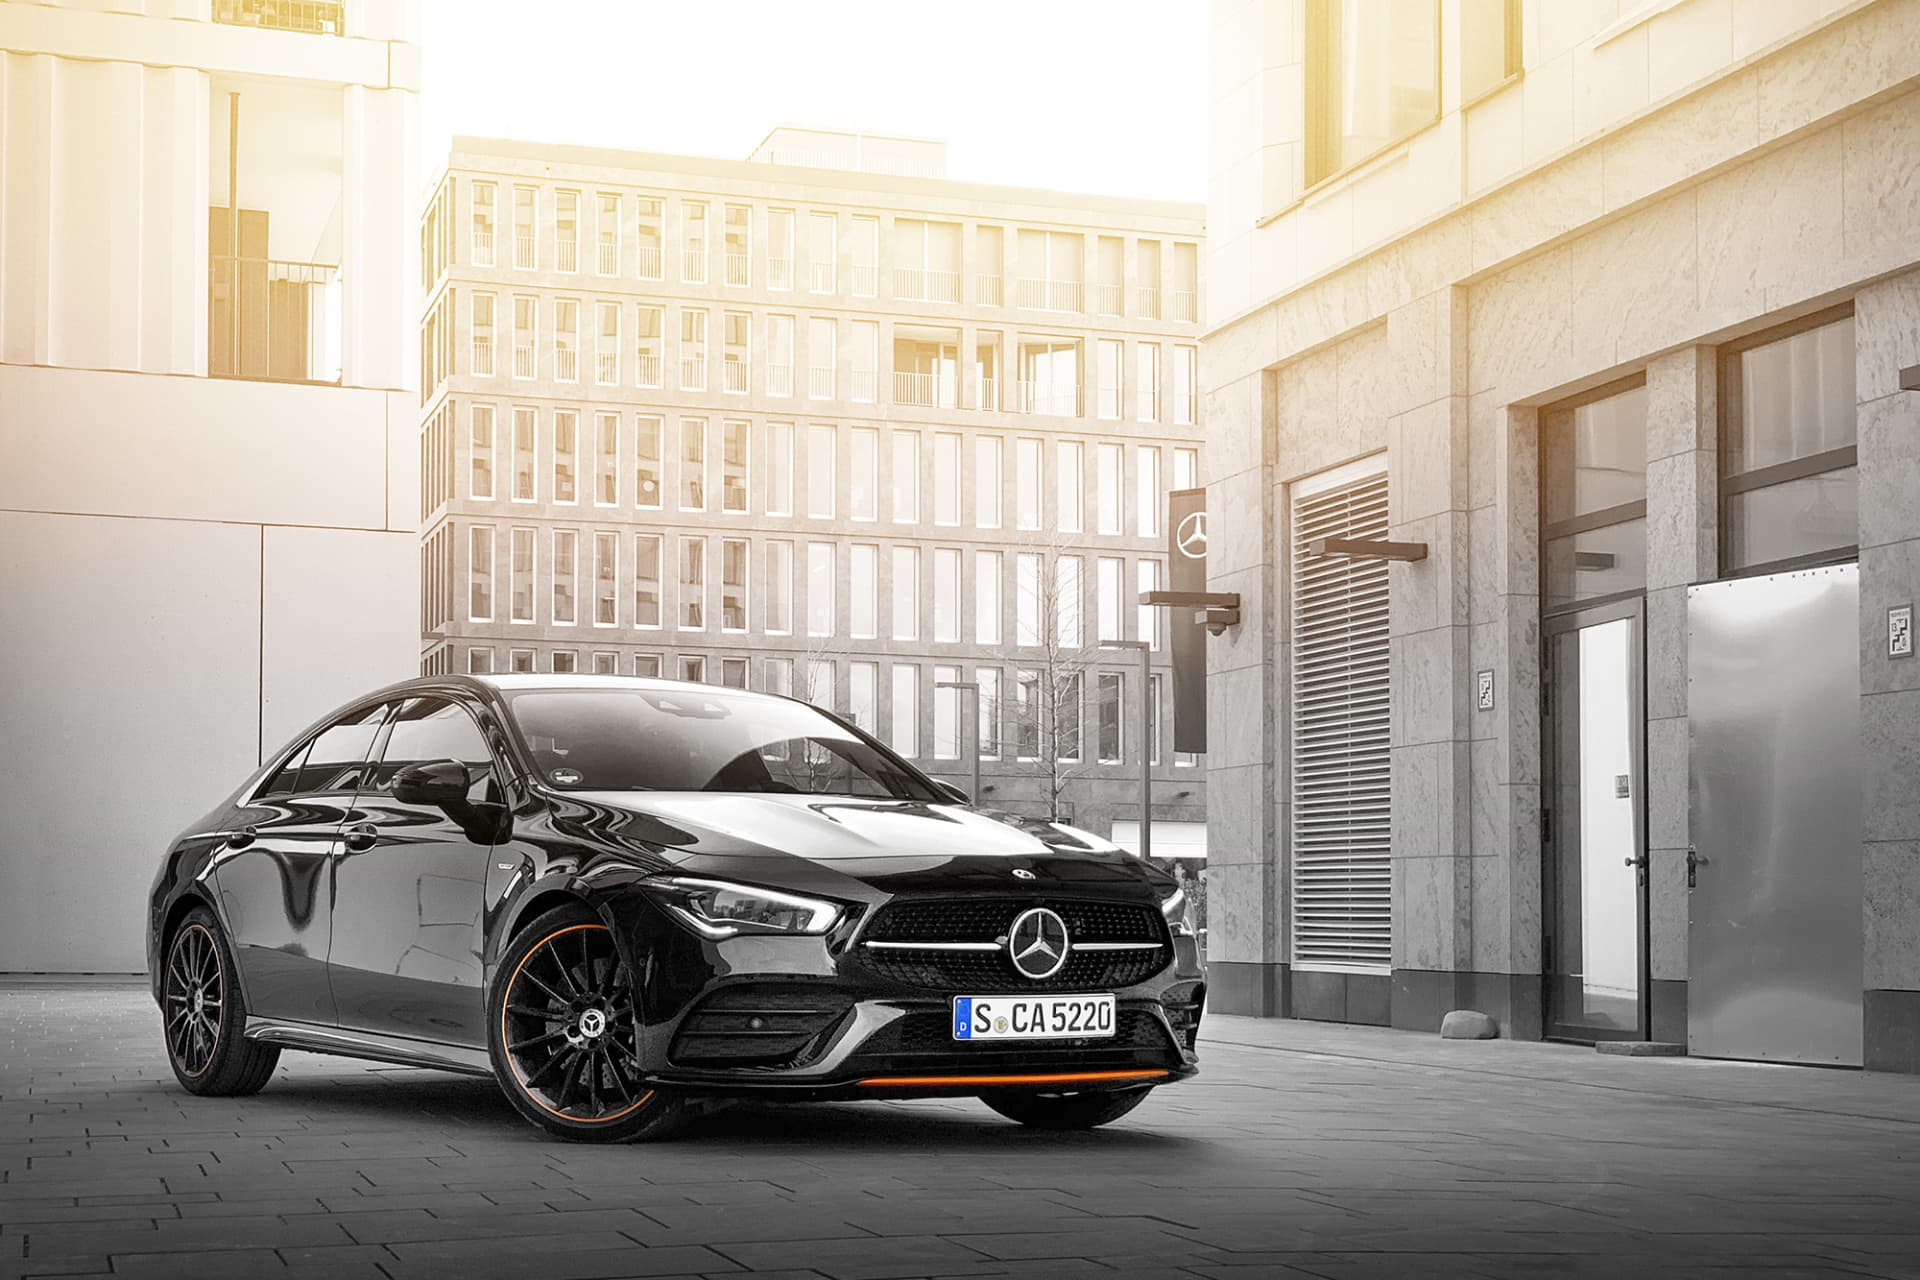 The new Mercedes CLA feels more mature and flawless than its predecessor. The shapes have been refined and the technology is fine-tuned.